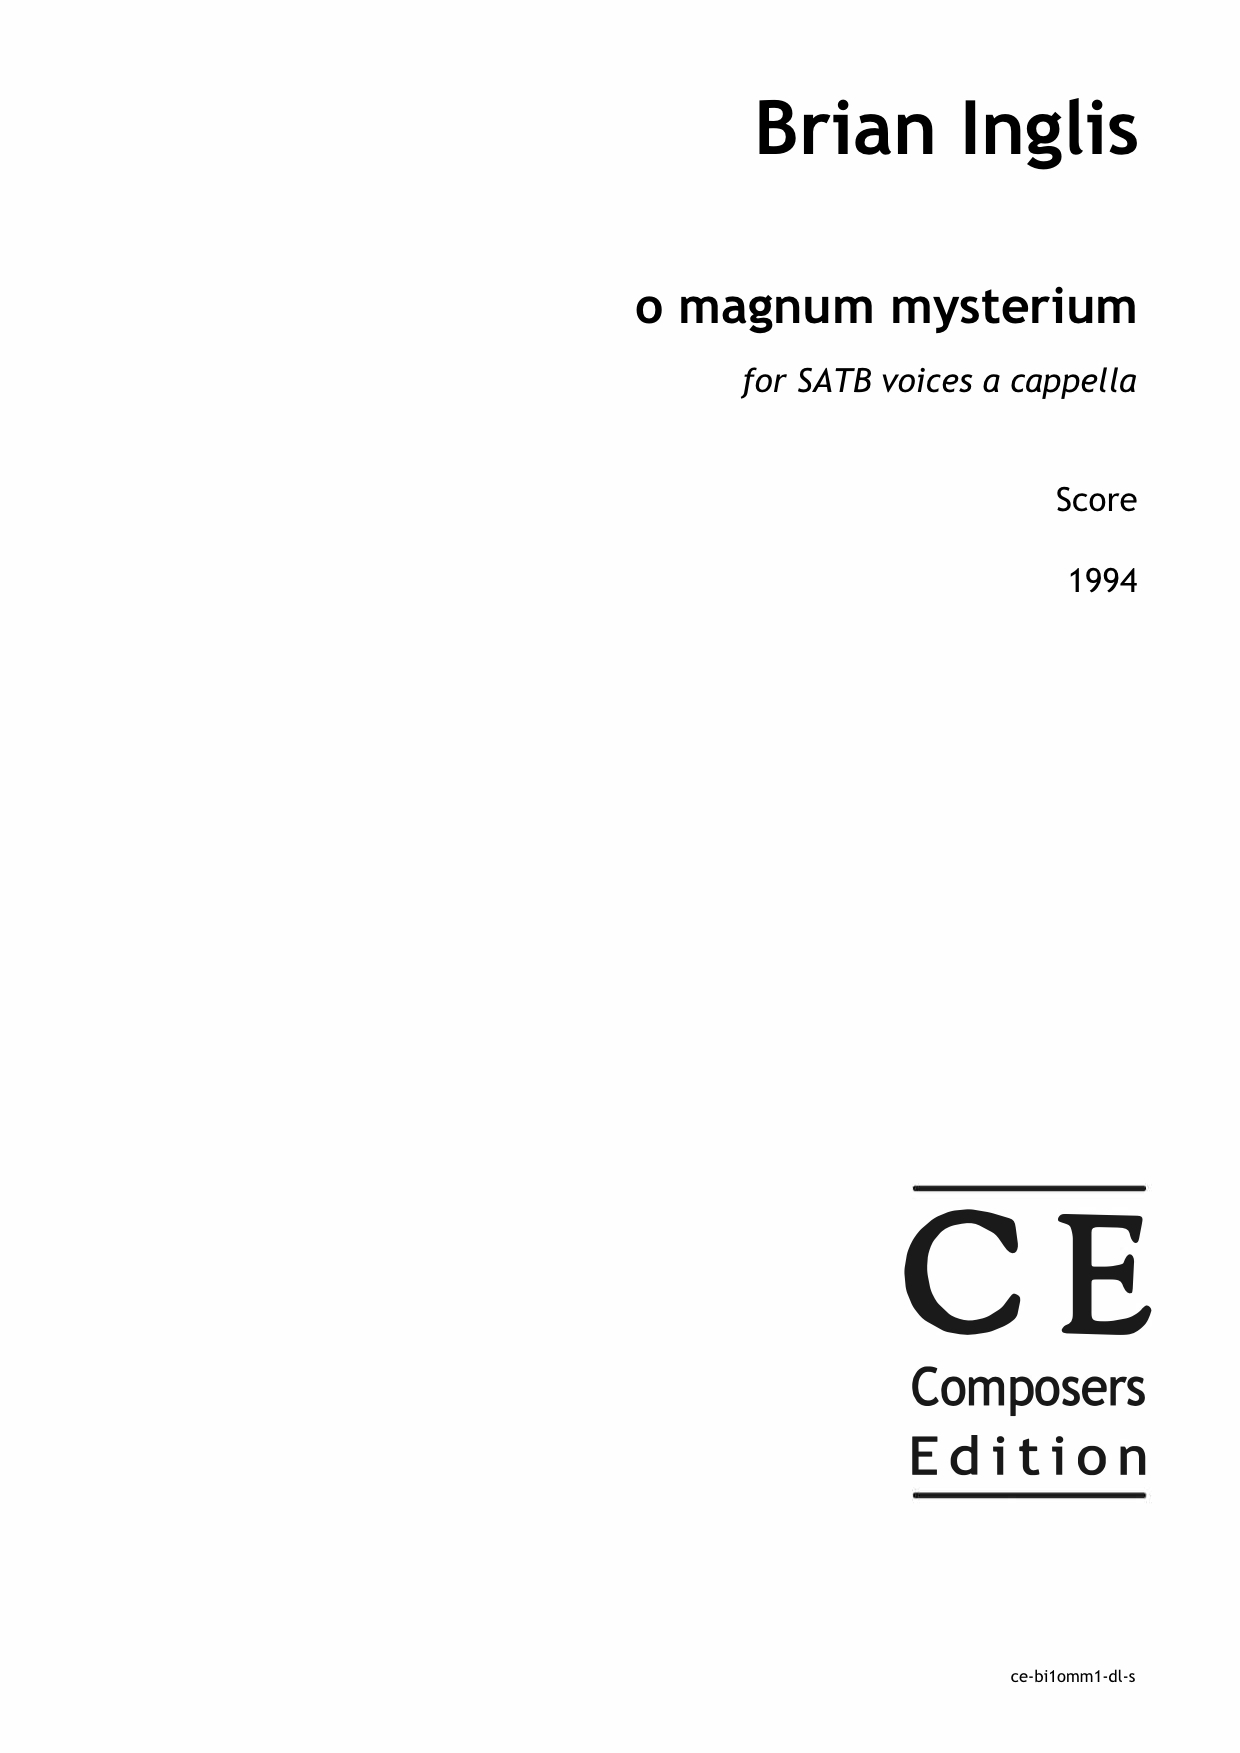 Brian Inglis: o magnum mysterium (SATB version) for SATB voices a cappella